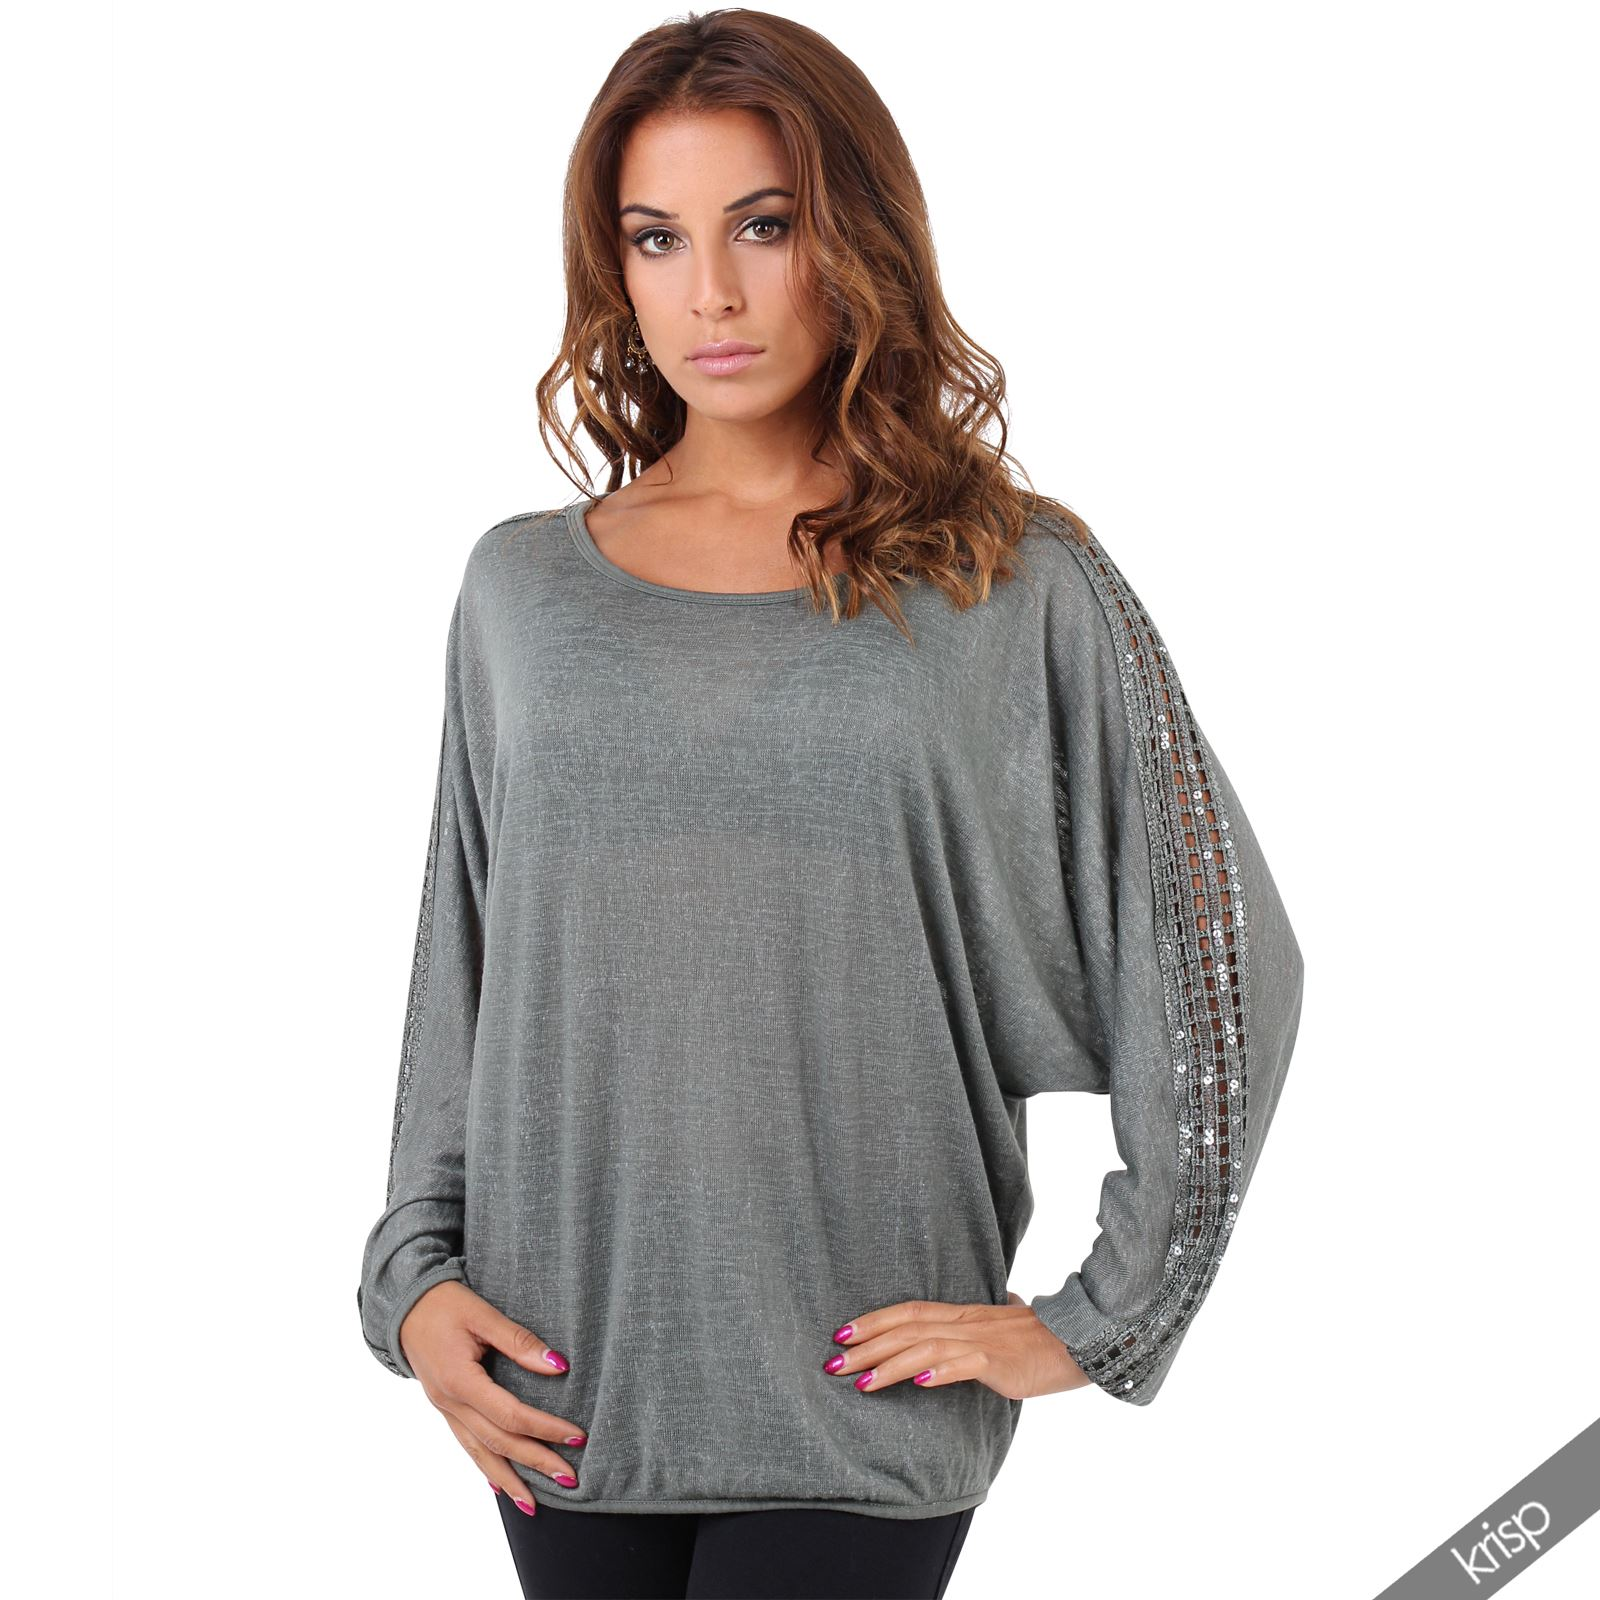 Slightly fitted through body. Tunic sweater hits at hip. Model is approximately 5'9